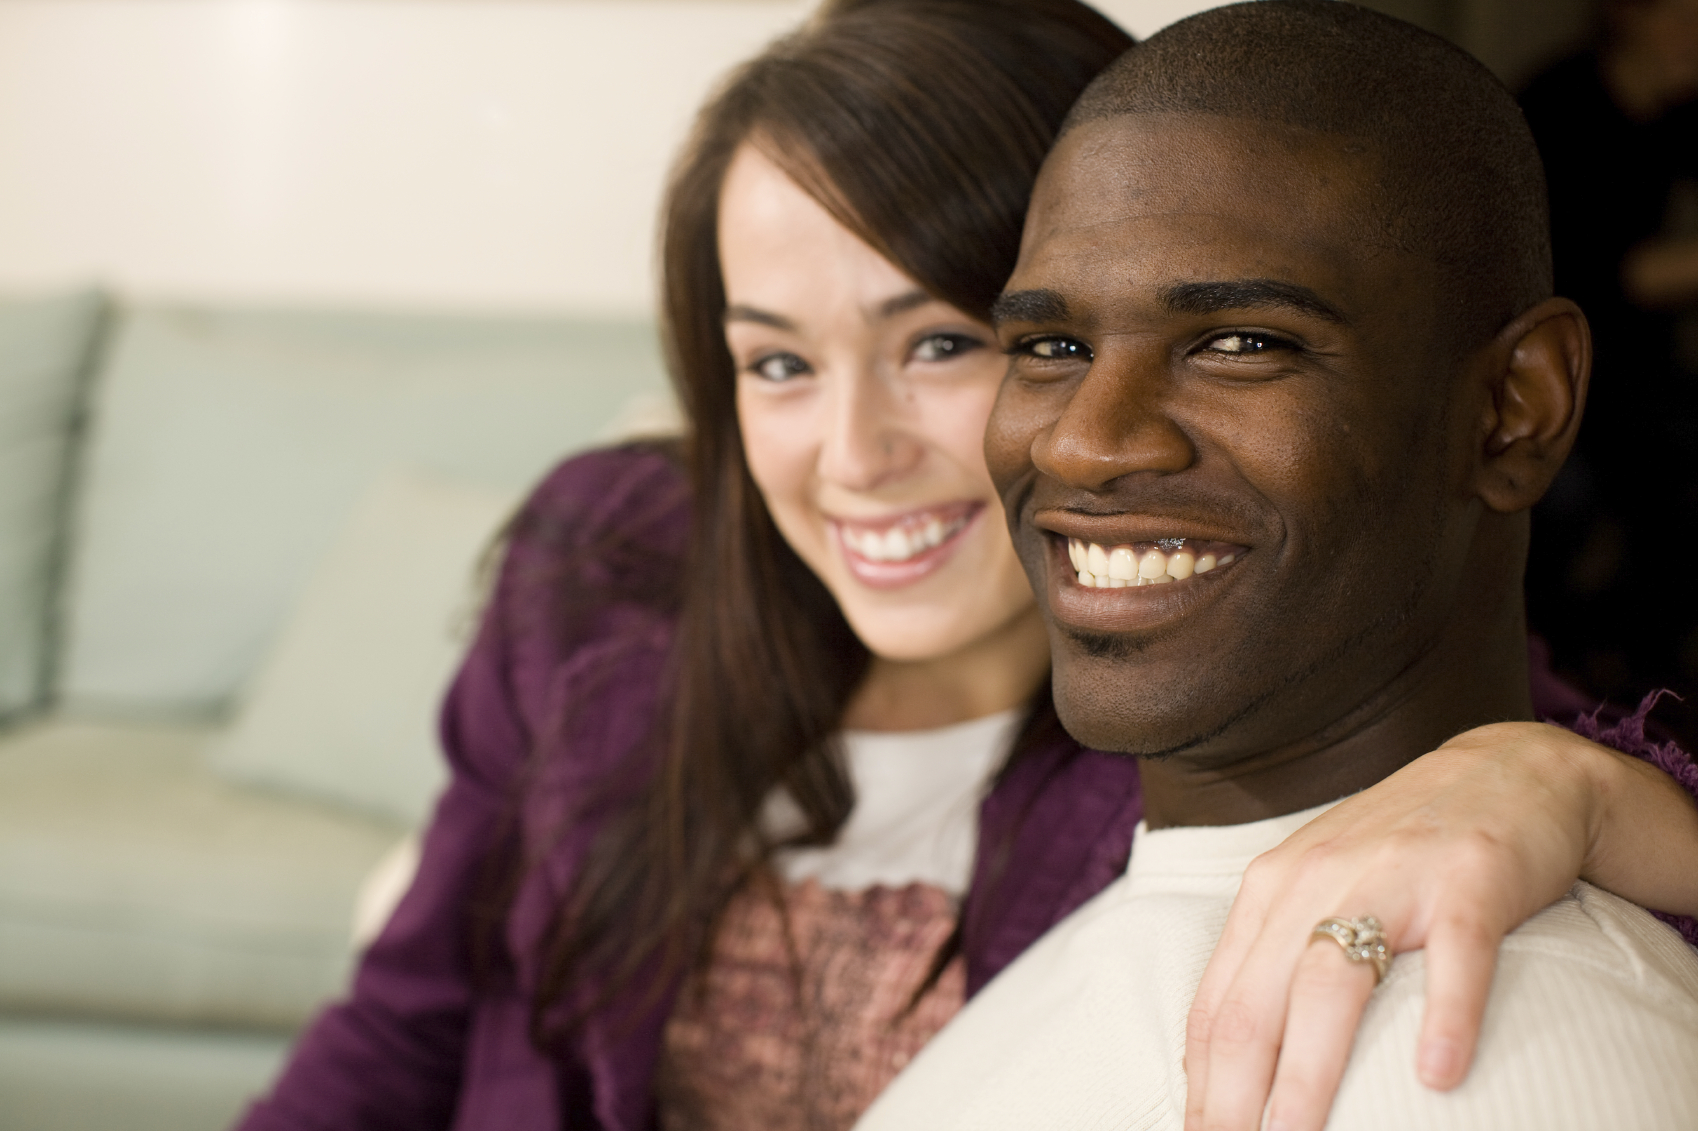 racial relations dating interratially An ethnography on interracial relationships by unc chapel hill students.